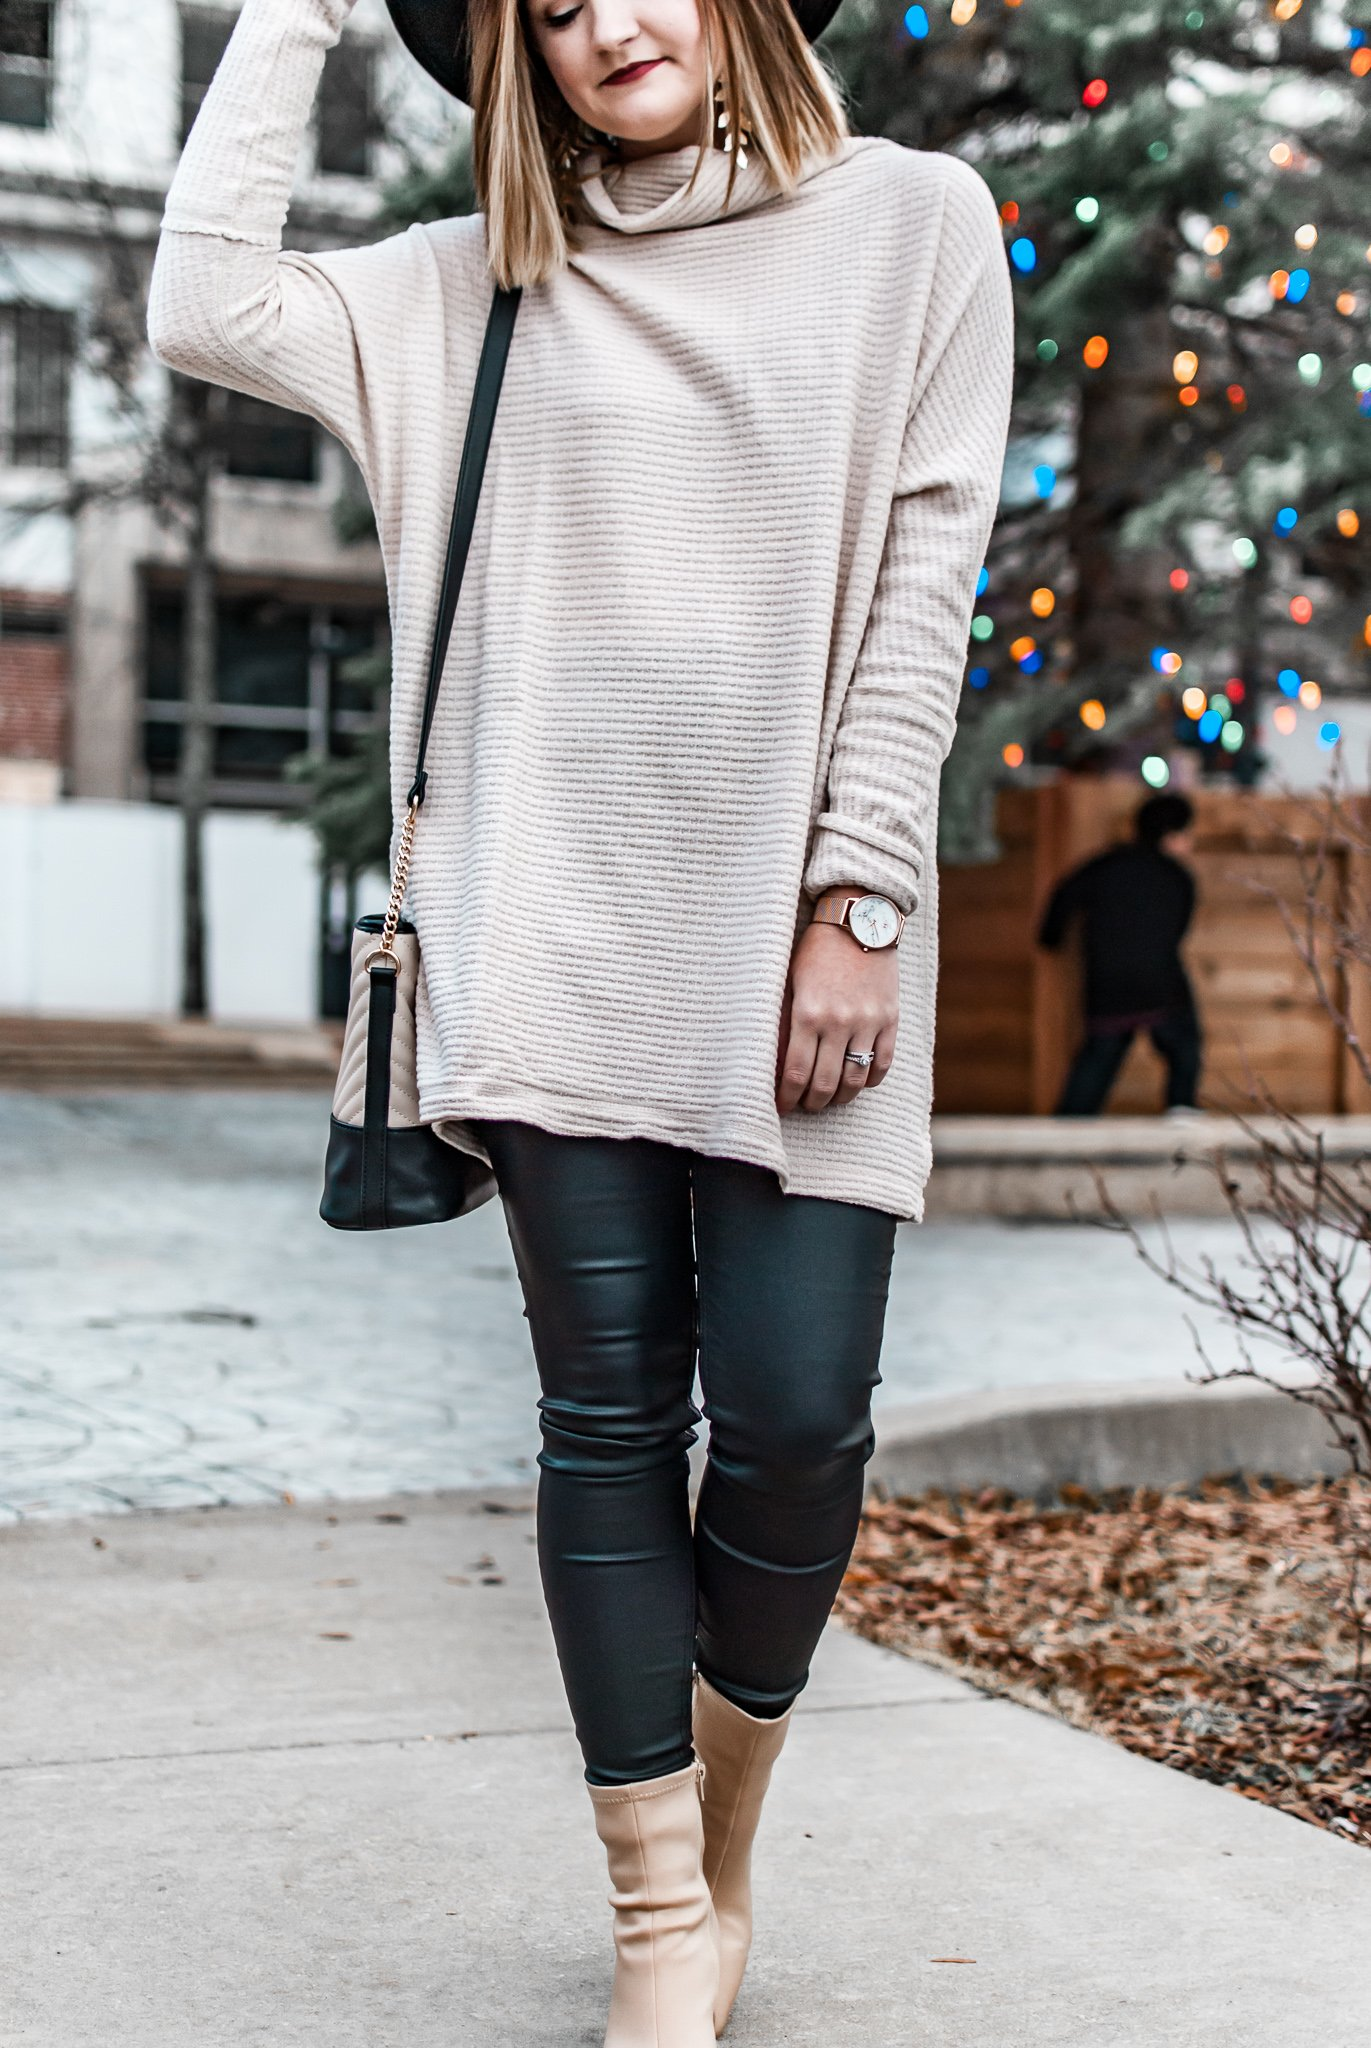 Cozy Winter Style + Last Minute Holiday Shopping Tips